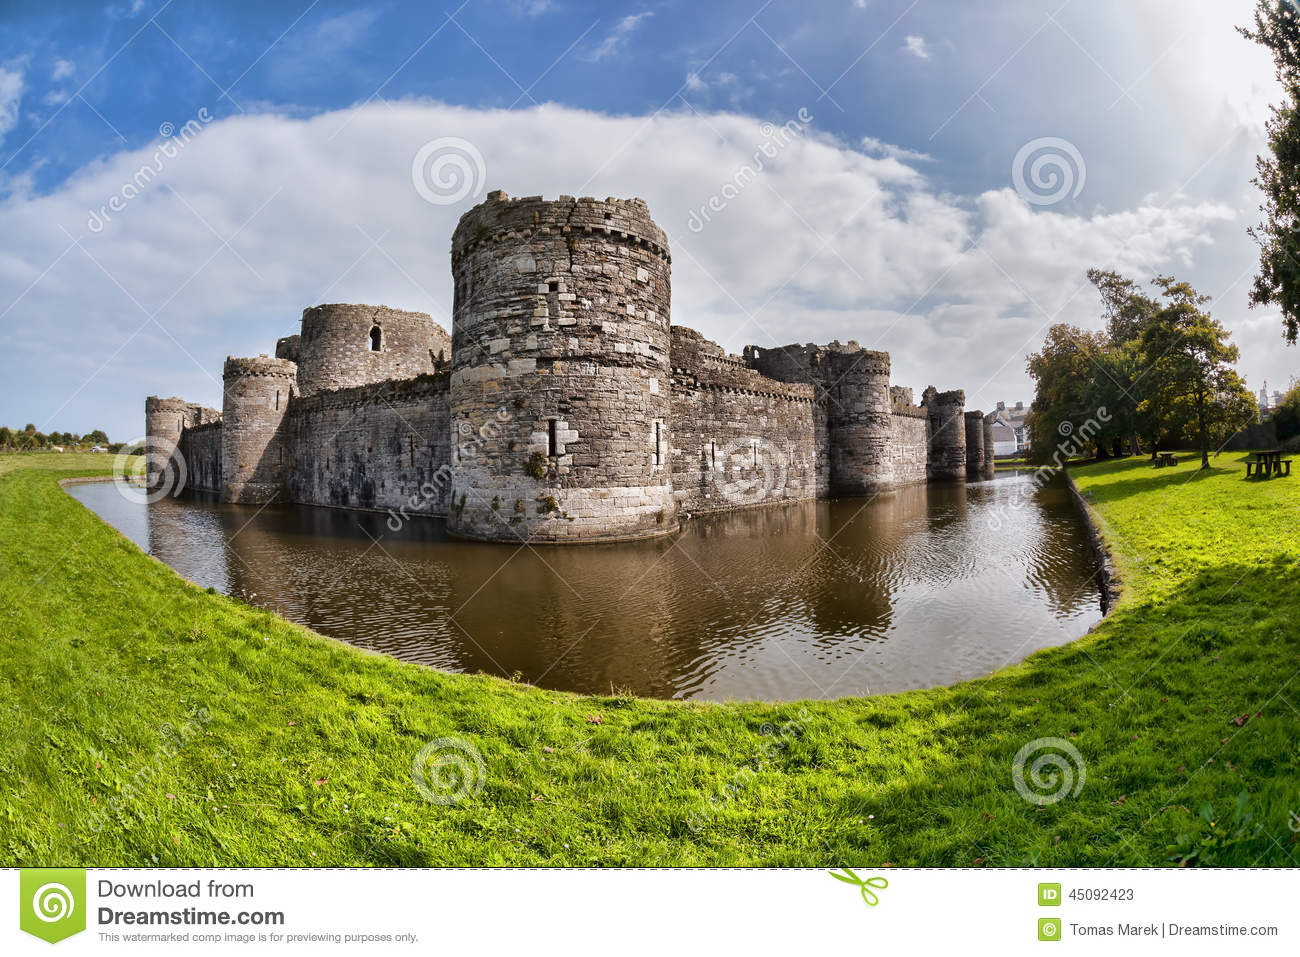 Beaumaris United Kingdom  city images : Stock Photo: Beaumaris Castle in Anglesey, North Wales, United Kingdom ...